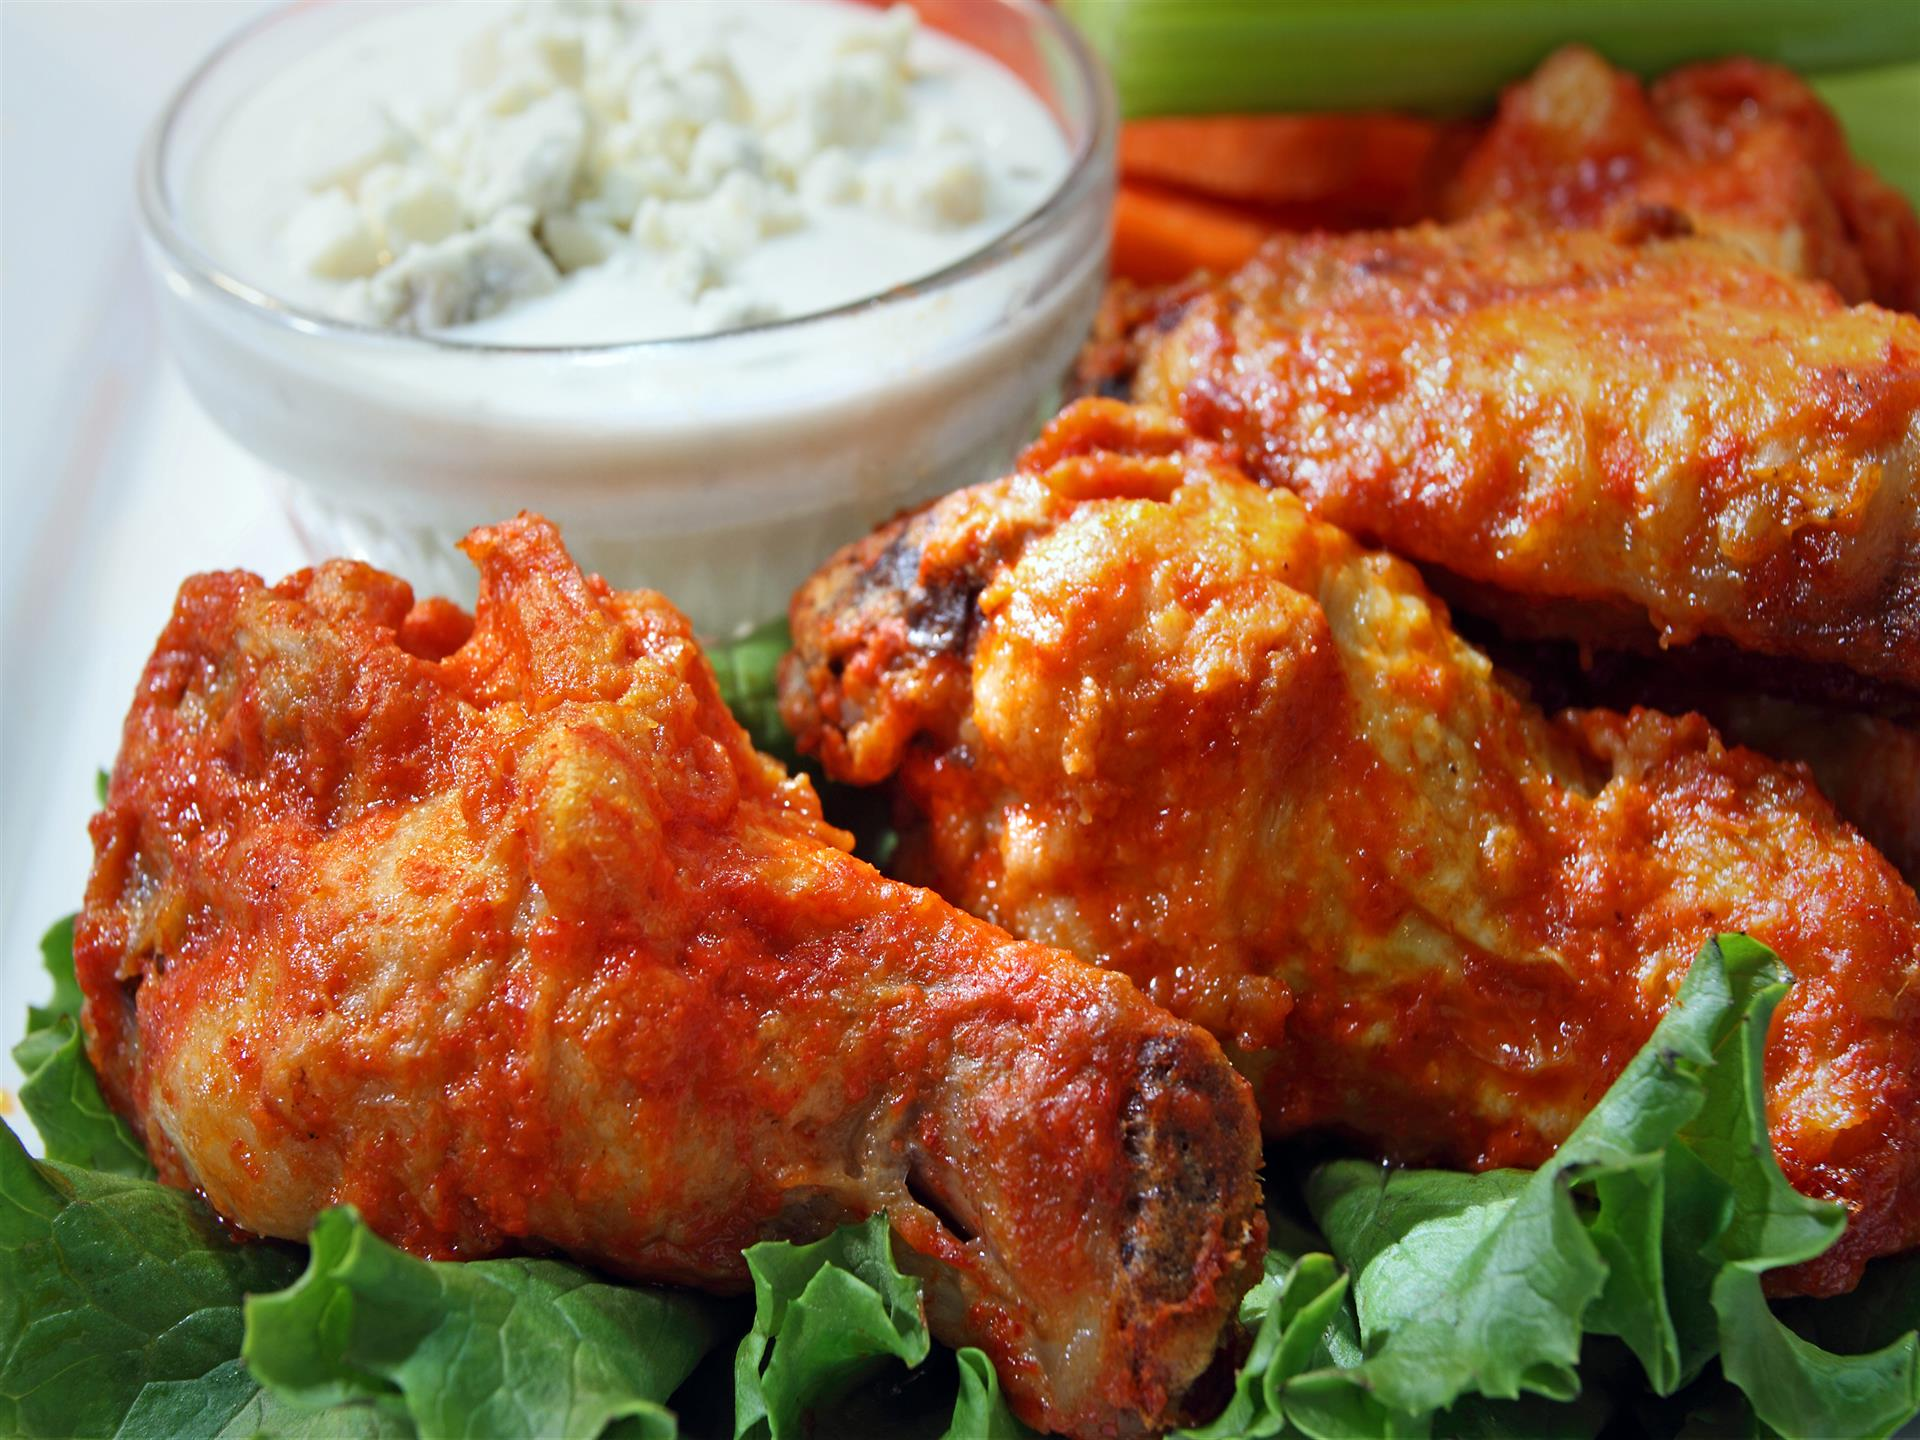 three buffalo wings with dipping sauce